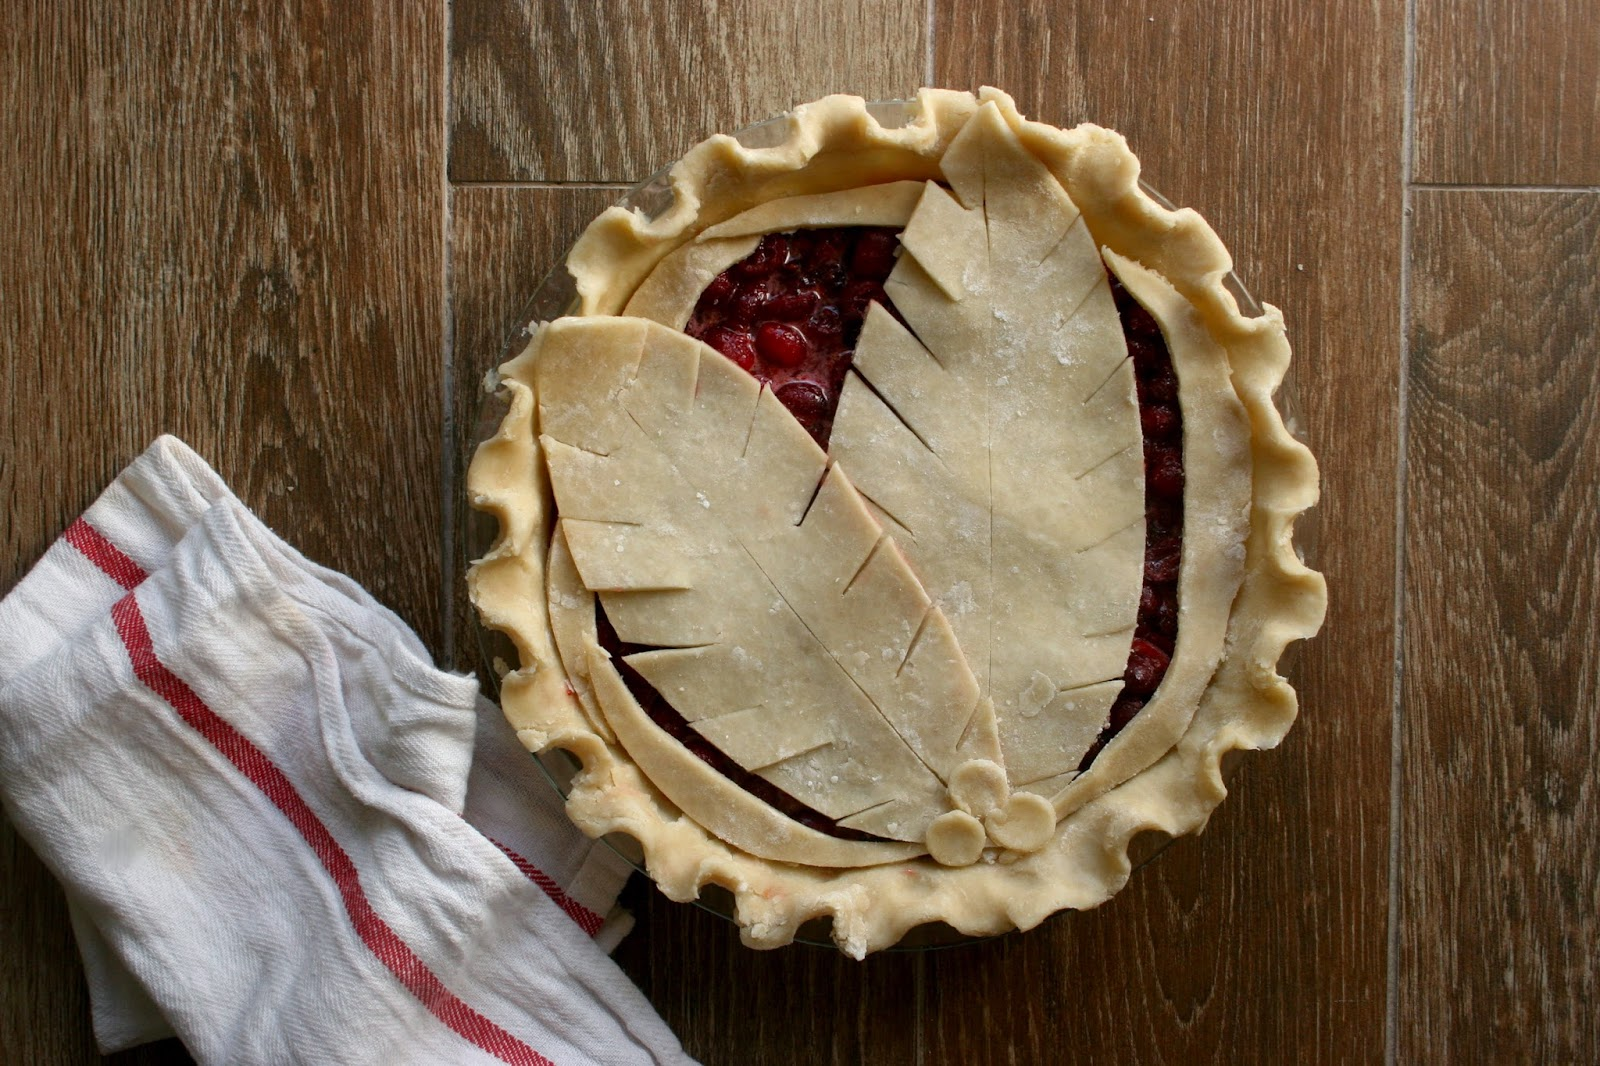 Cranberry Pie with Decorated Crust, Pre-Bake